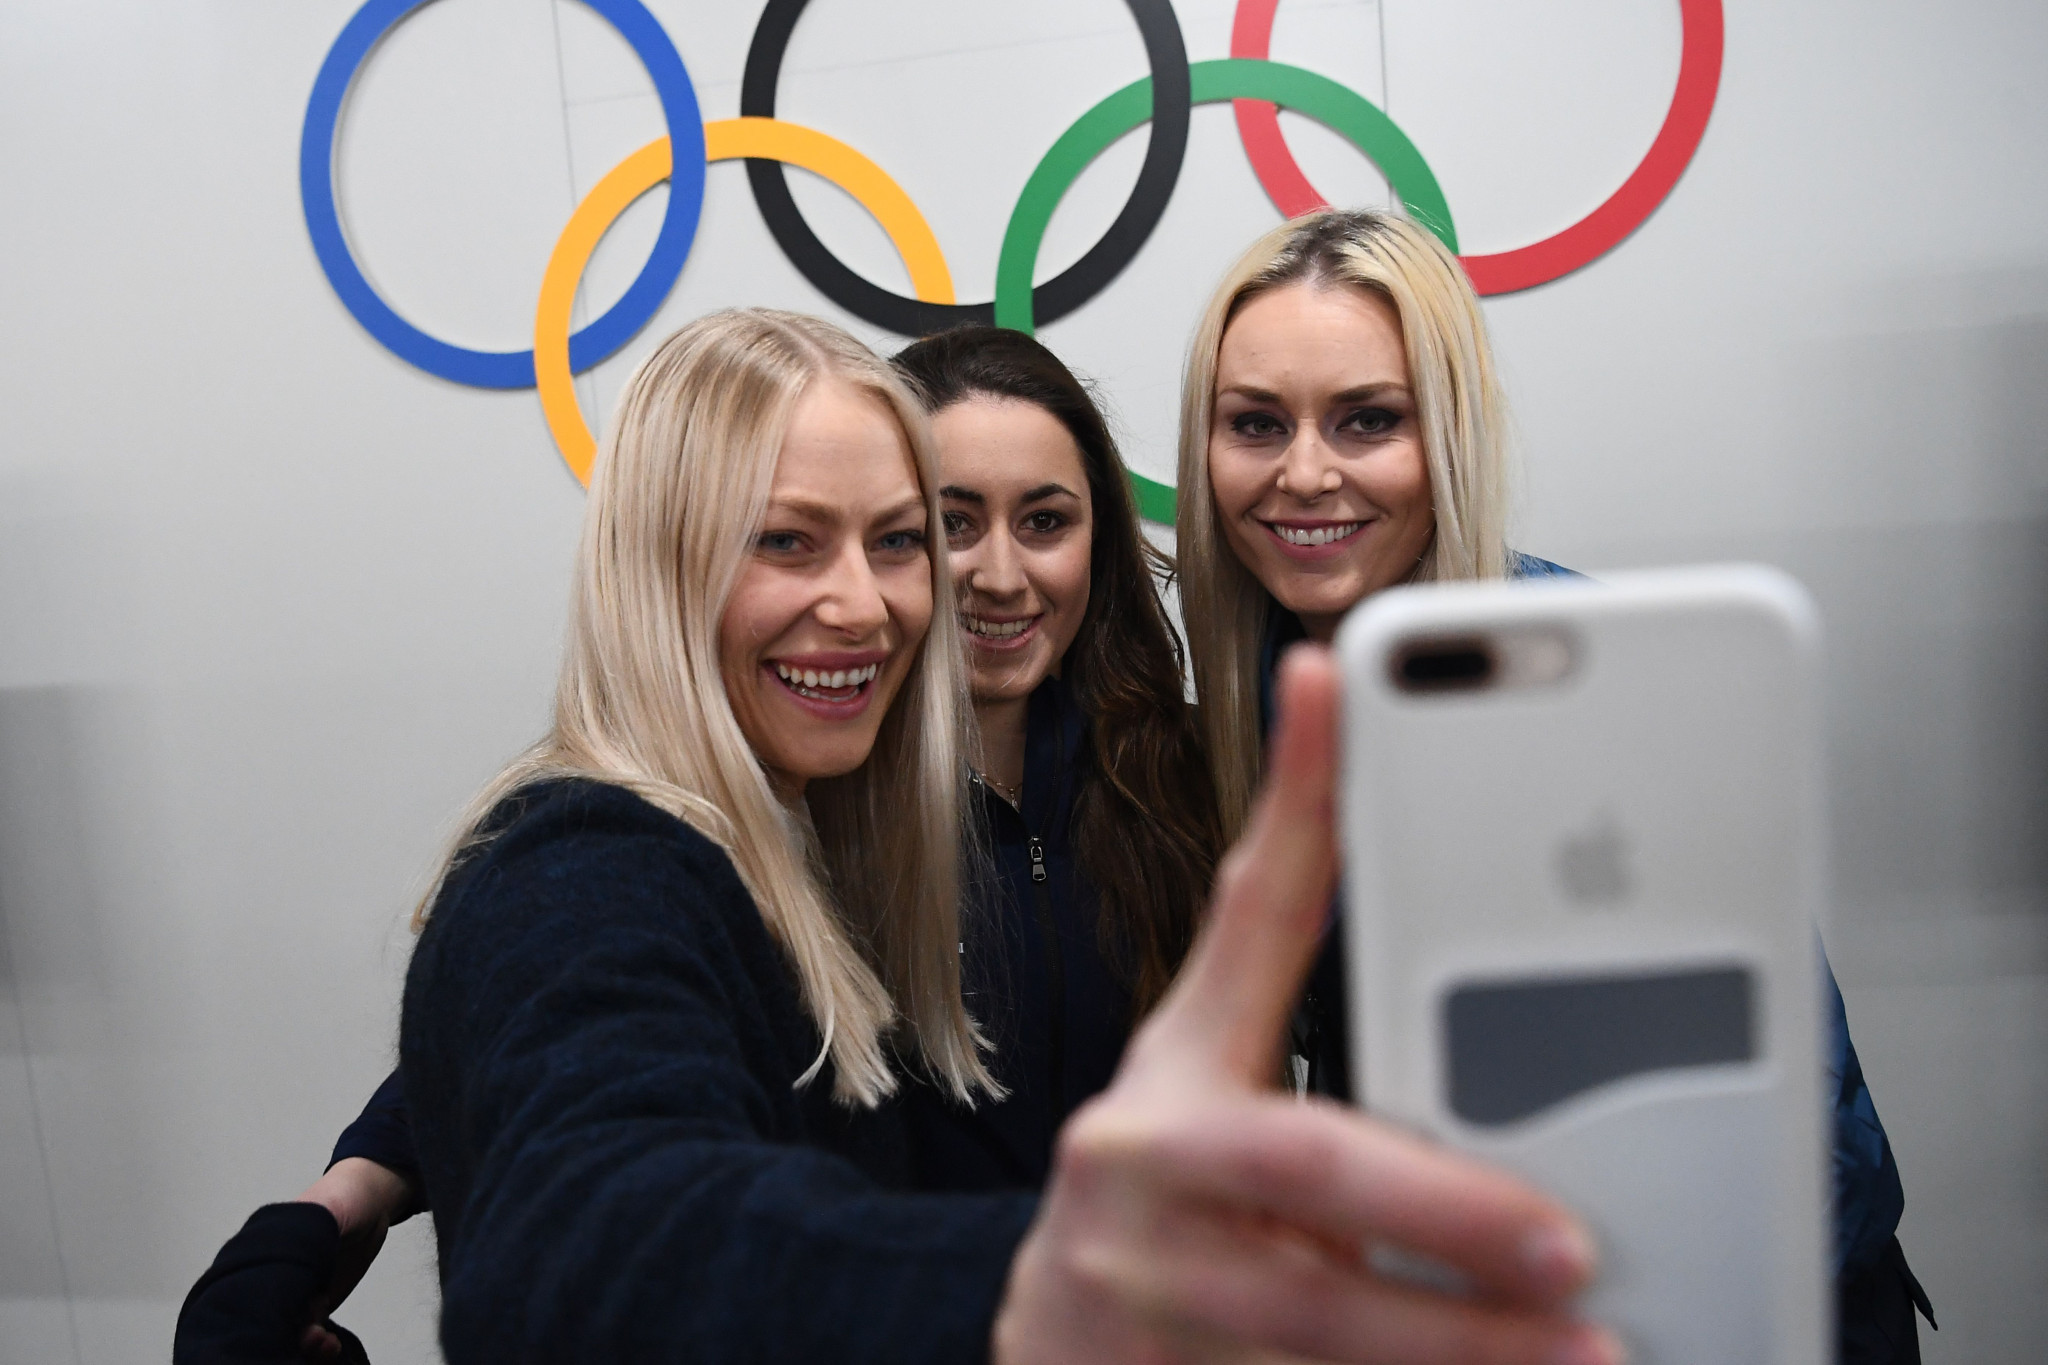 Olympic sports are under pressure to appeal to younger fans using new technology ©Getty Images